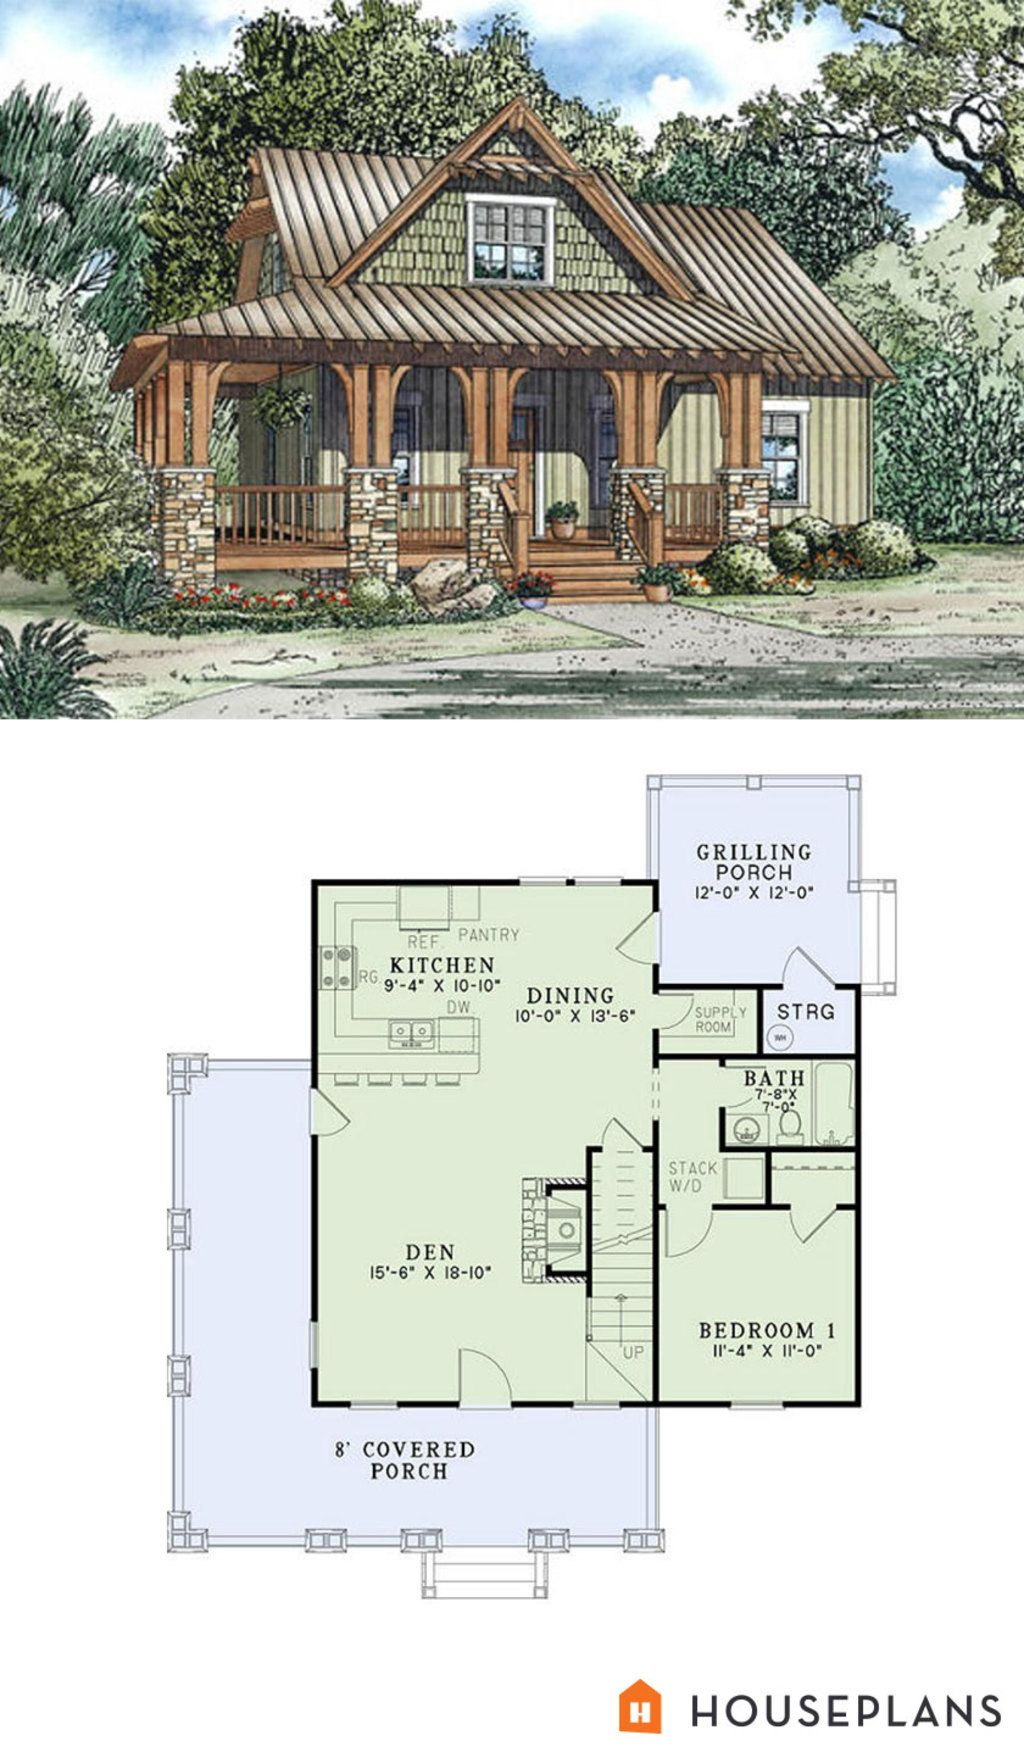 Craftsman cottage plan 1300sft 3br 2 ba plan 17 2450 i for Cottage floor plan